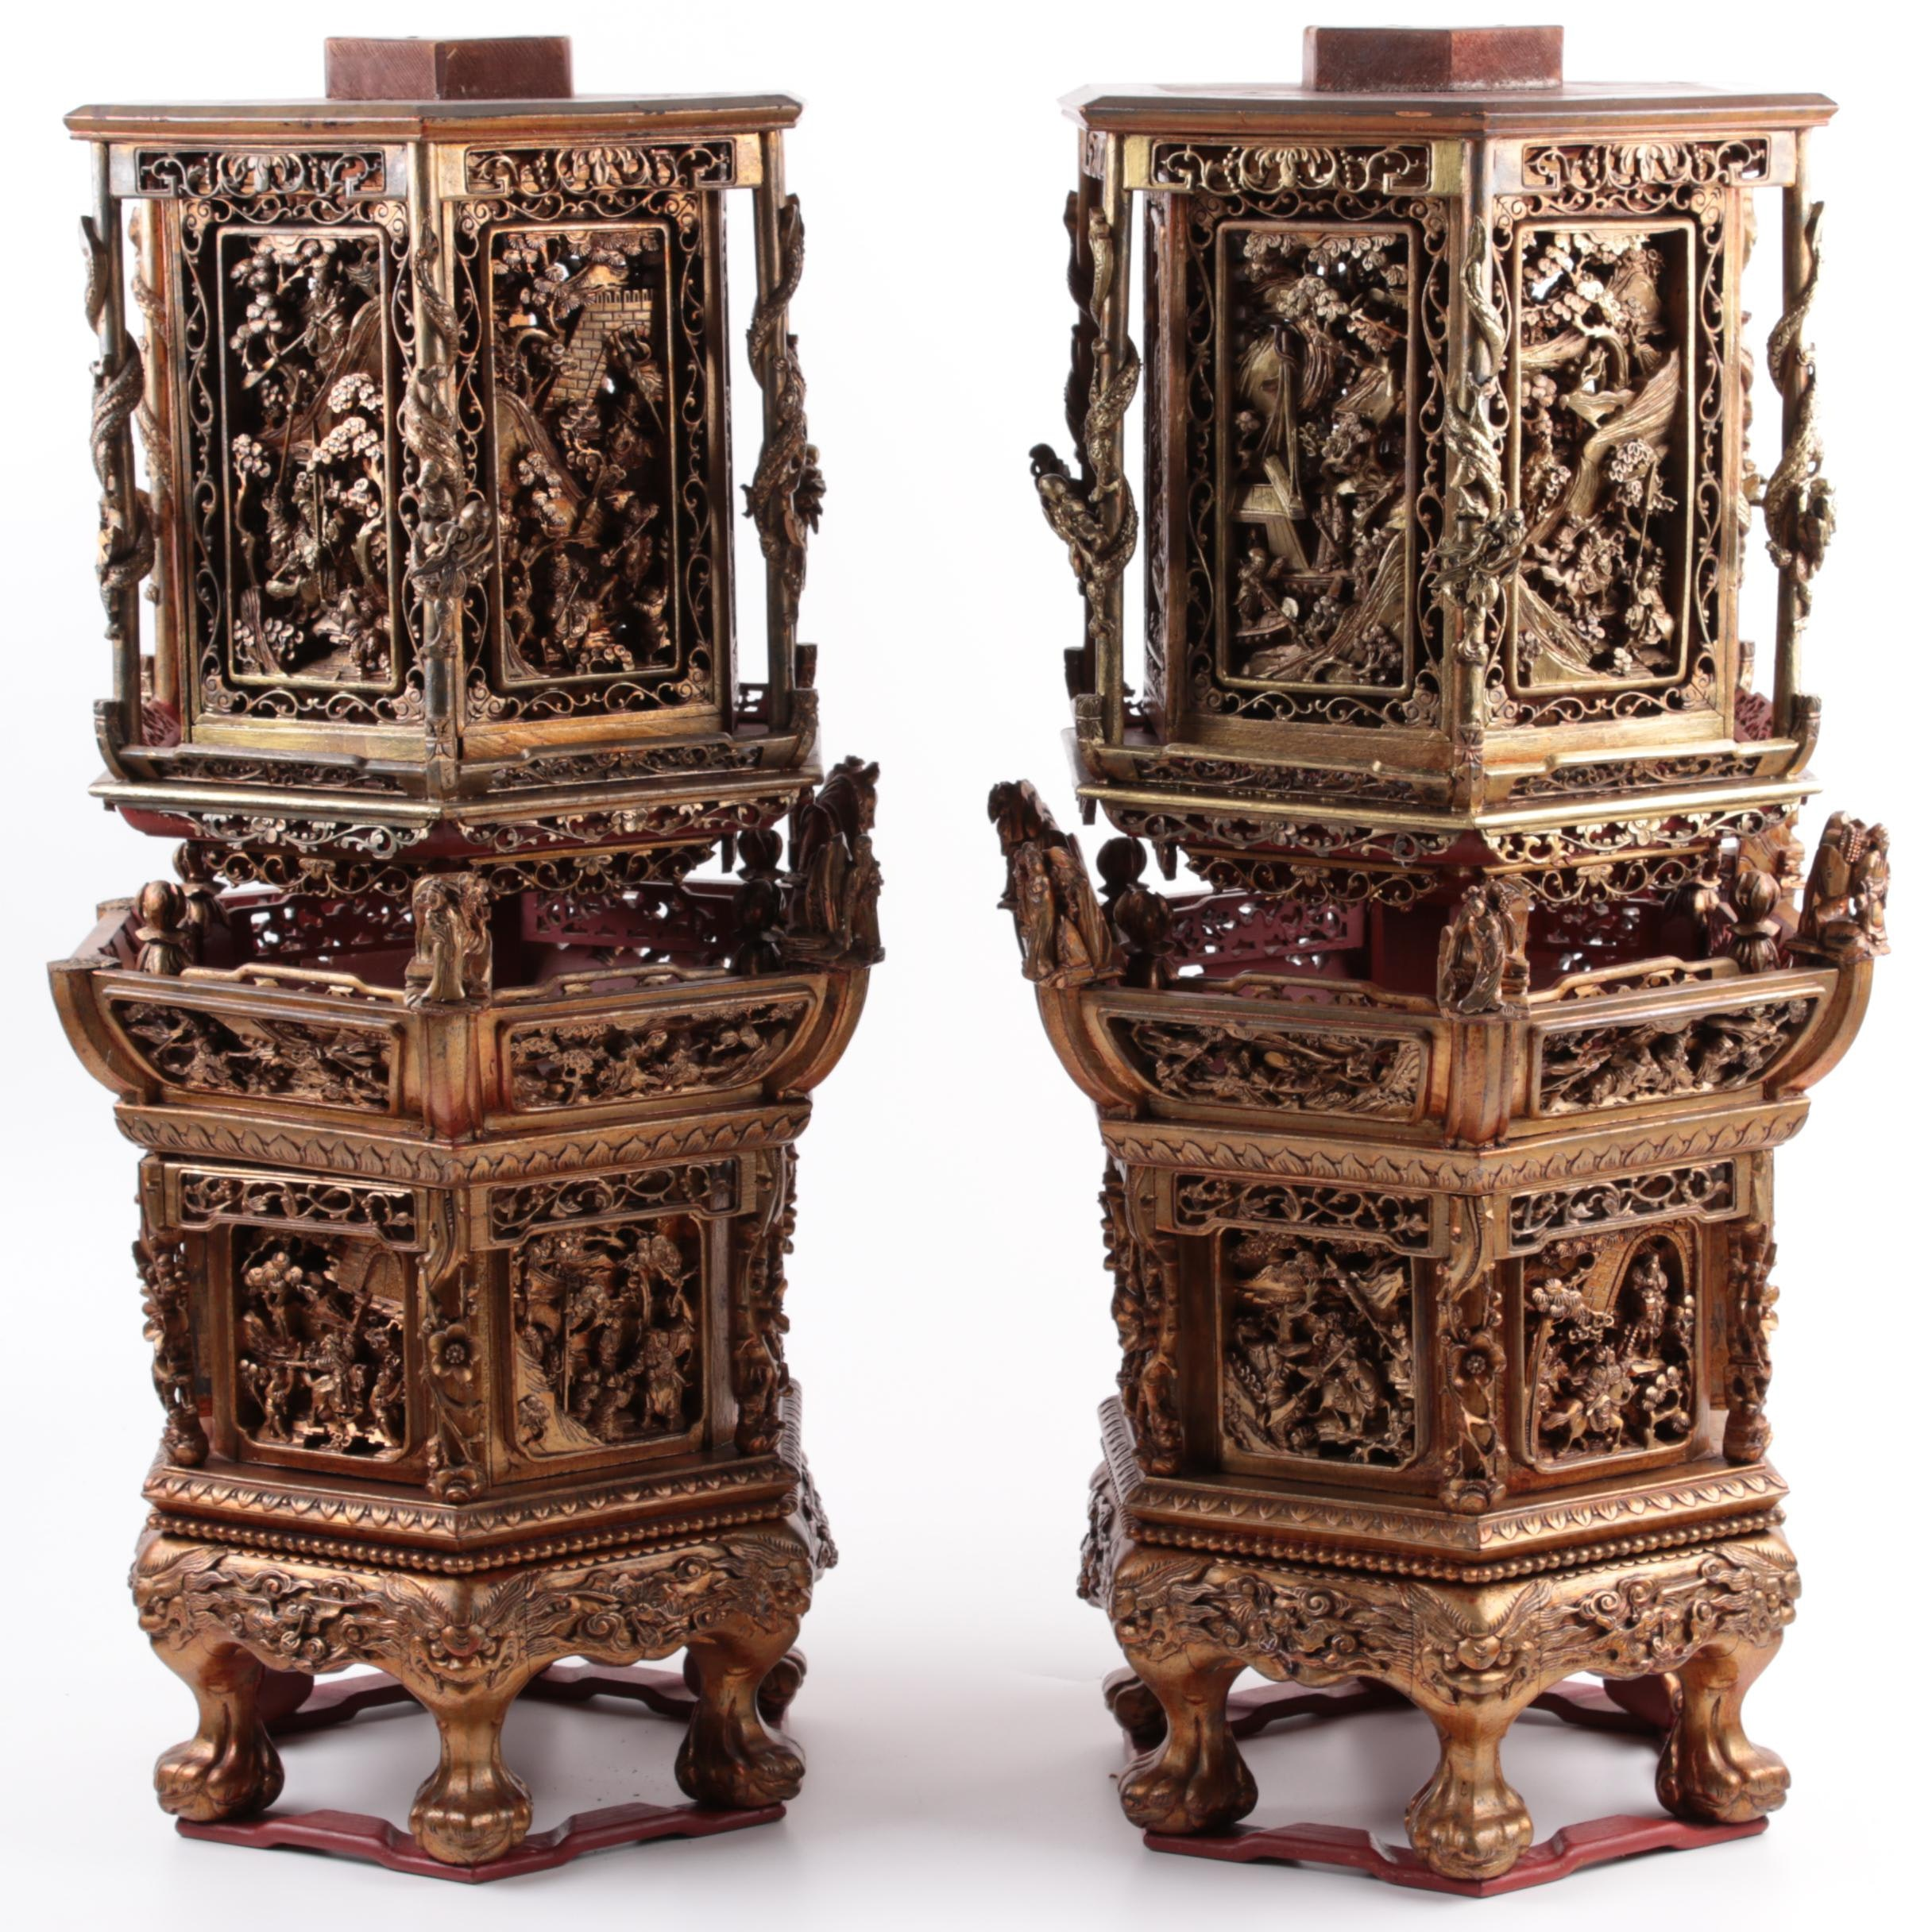 Qing Dynasty Chinese Finely Carved and Gilt Temple Stands